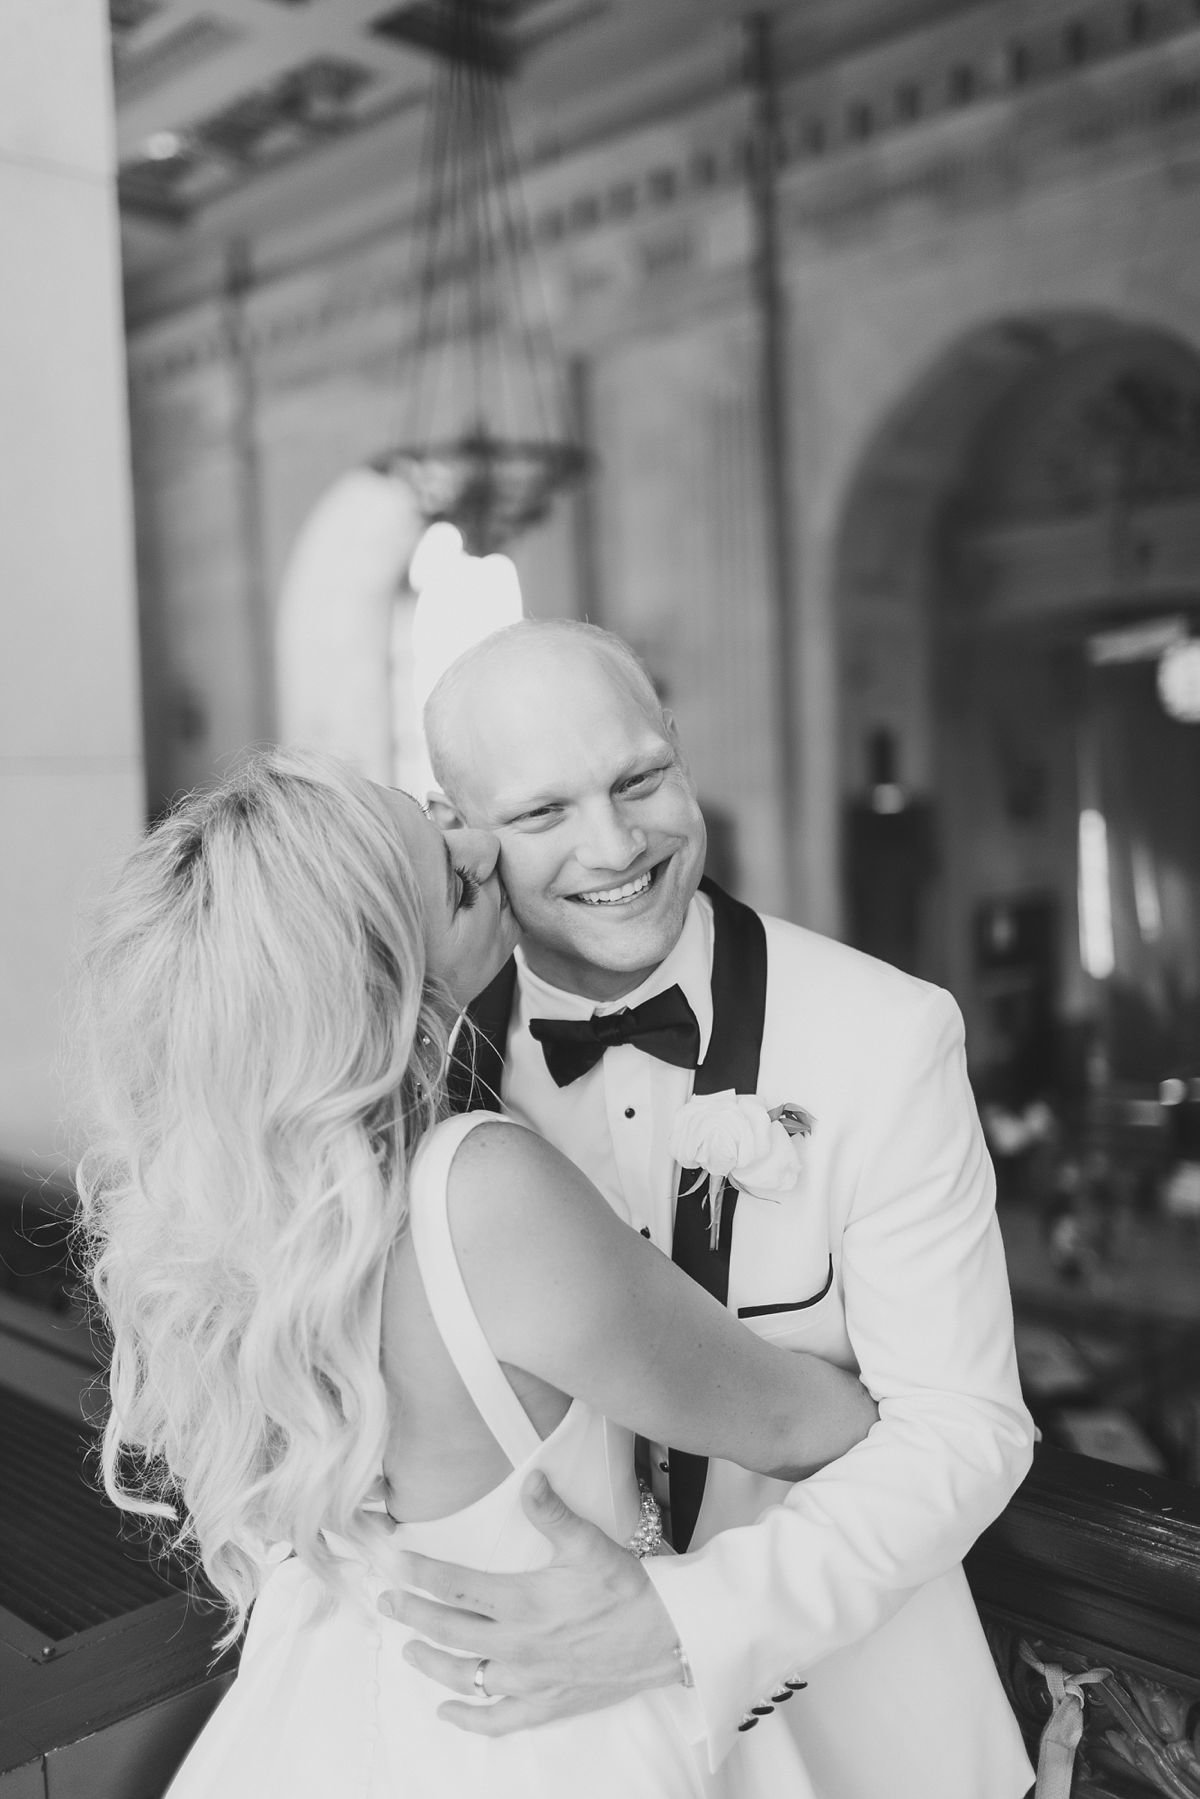 AshleyMatt_Portraits_UnionStation_KansasCityWedding_CatherineRhodesPhotography (293 of 354)-Edit